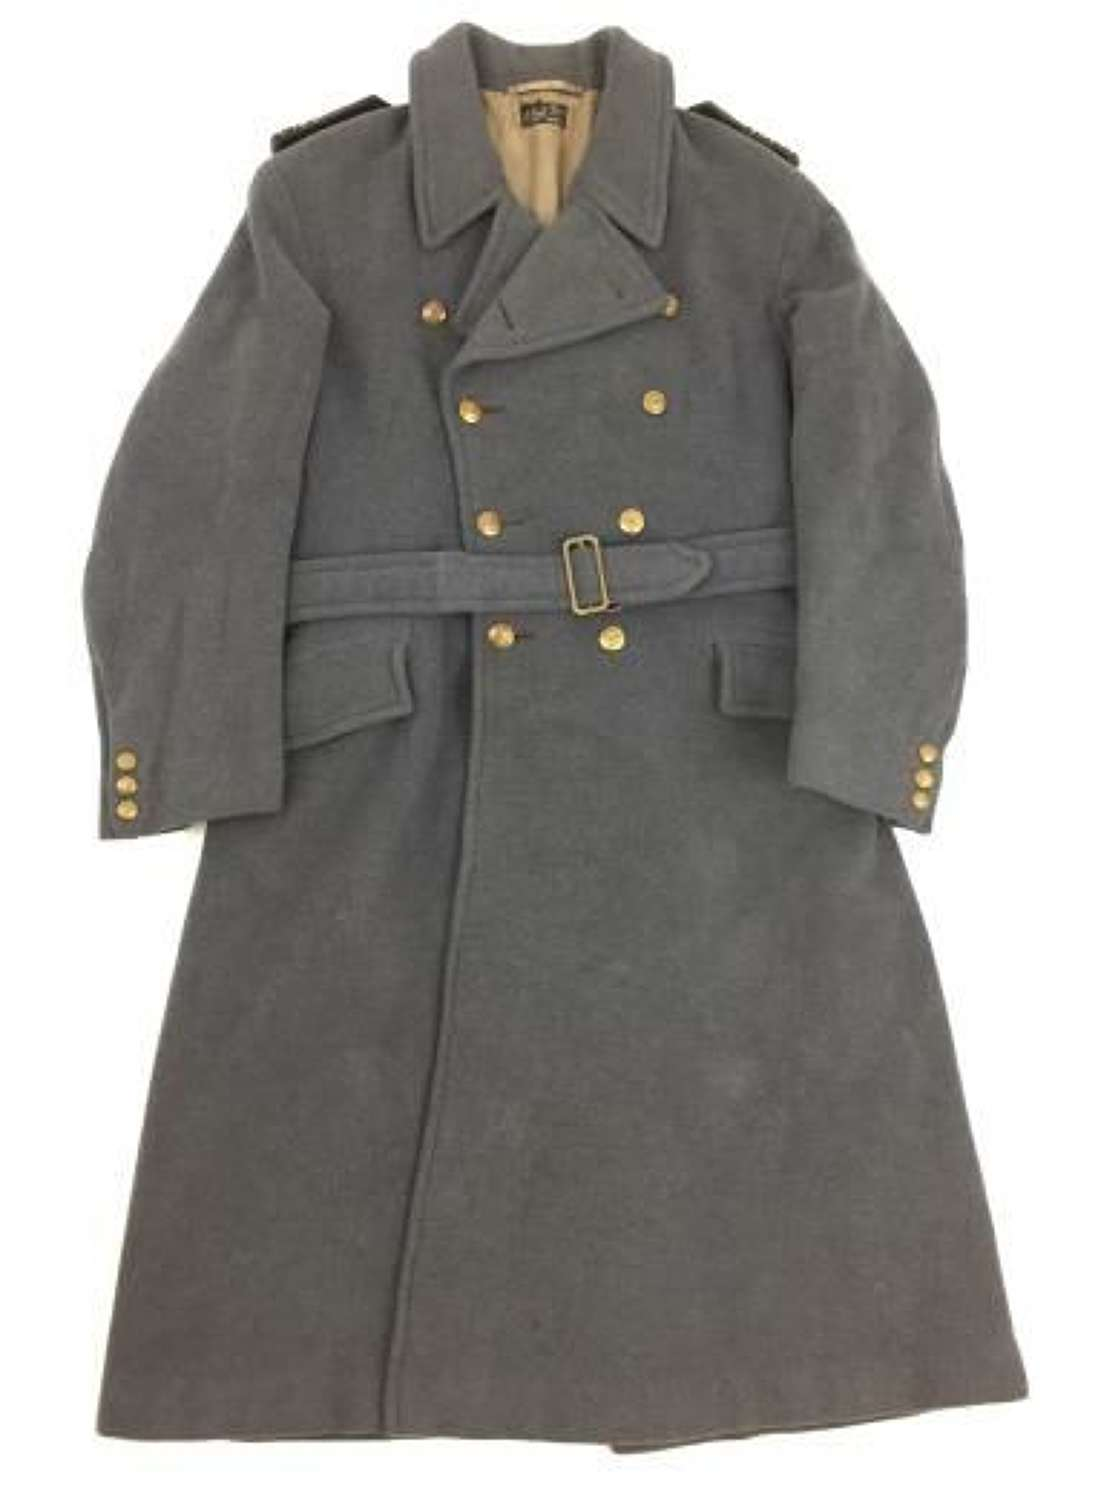 Original 1938 Dated RAF Officers Greatcoat